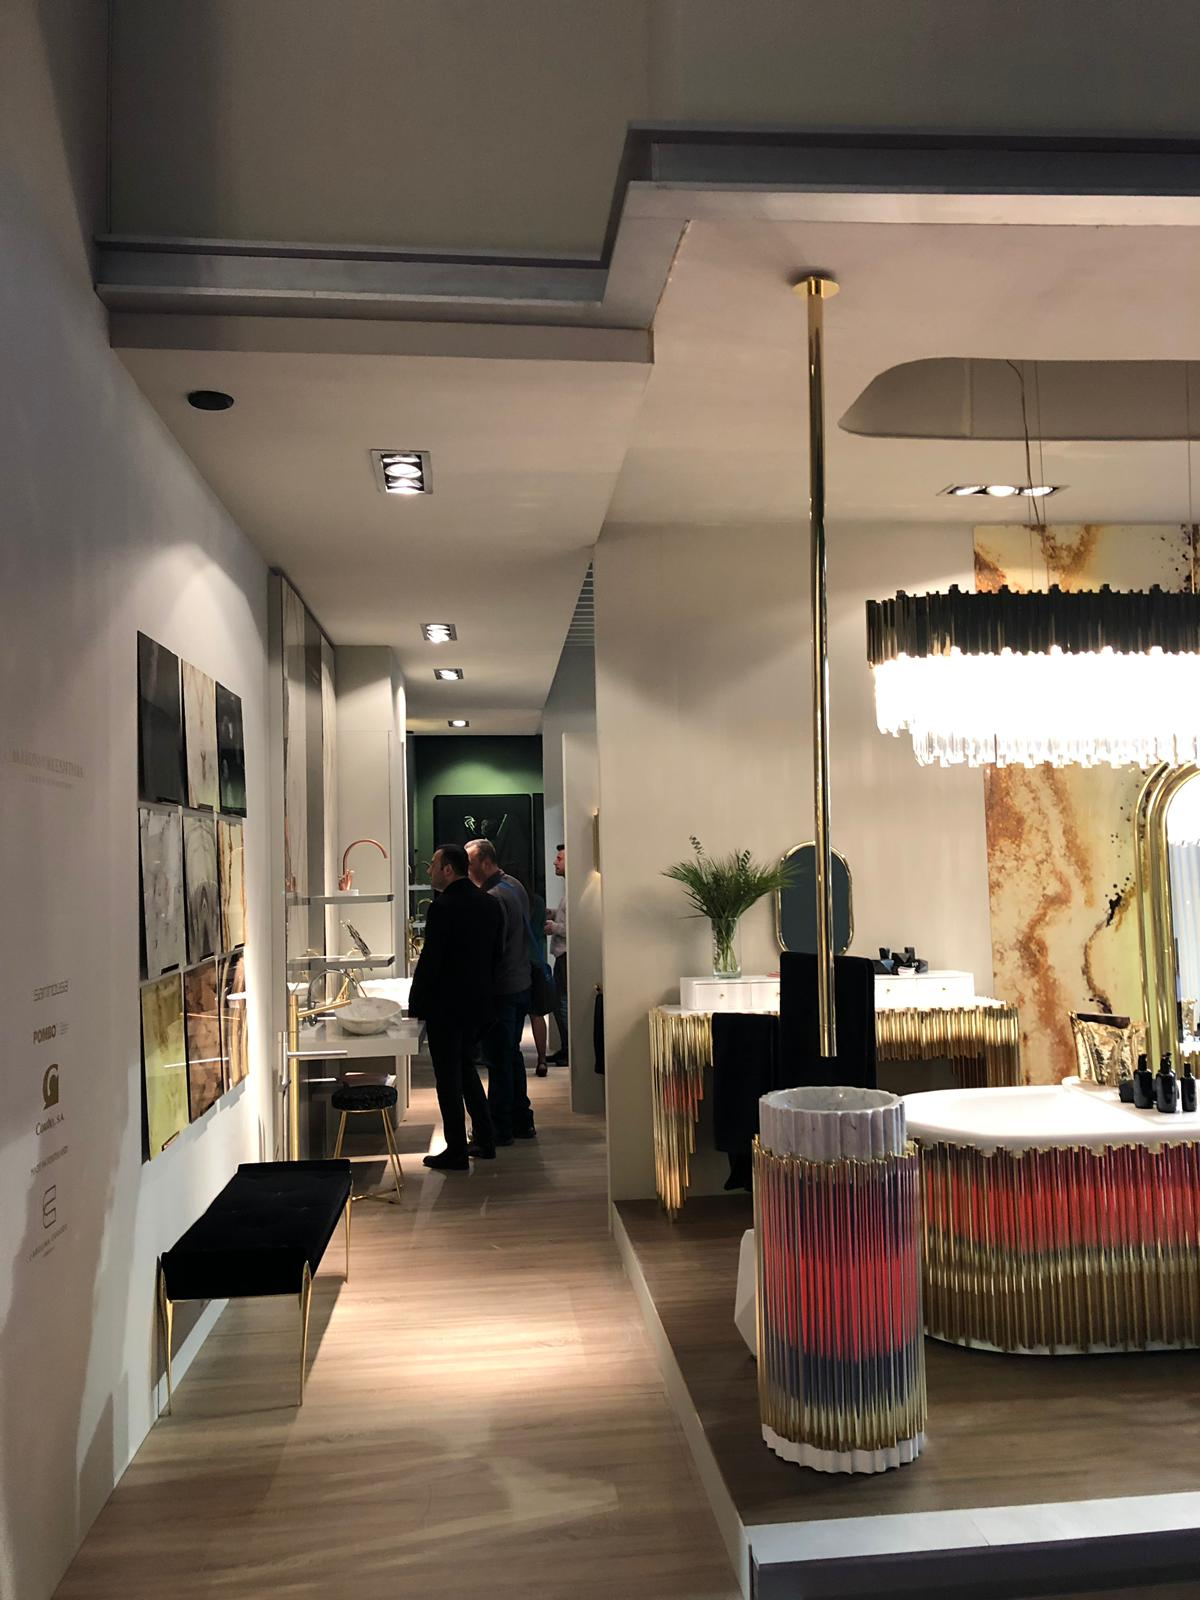 See Highlights from Maison Valentina's Stand at Maison et Objet 2019 (5) maison et objet See Highlights from Maison Valentina's Stand at Maison et Objet 2019 See Highlights from Maison Valentinas Stand at Maison et Objet 2019 5